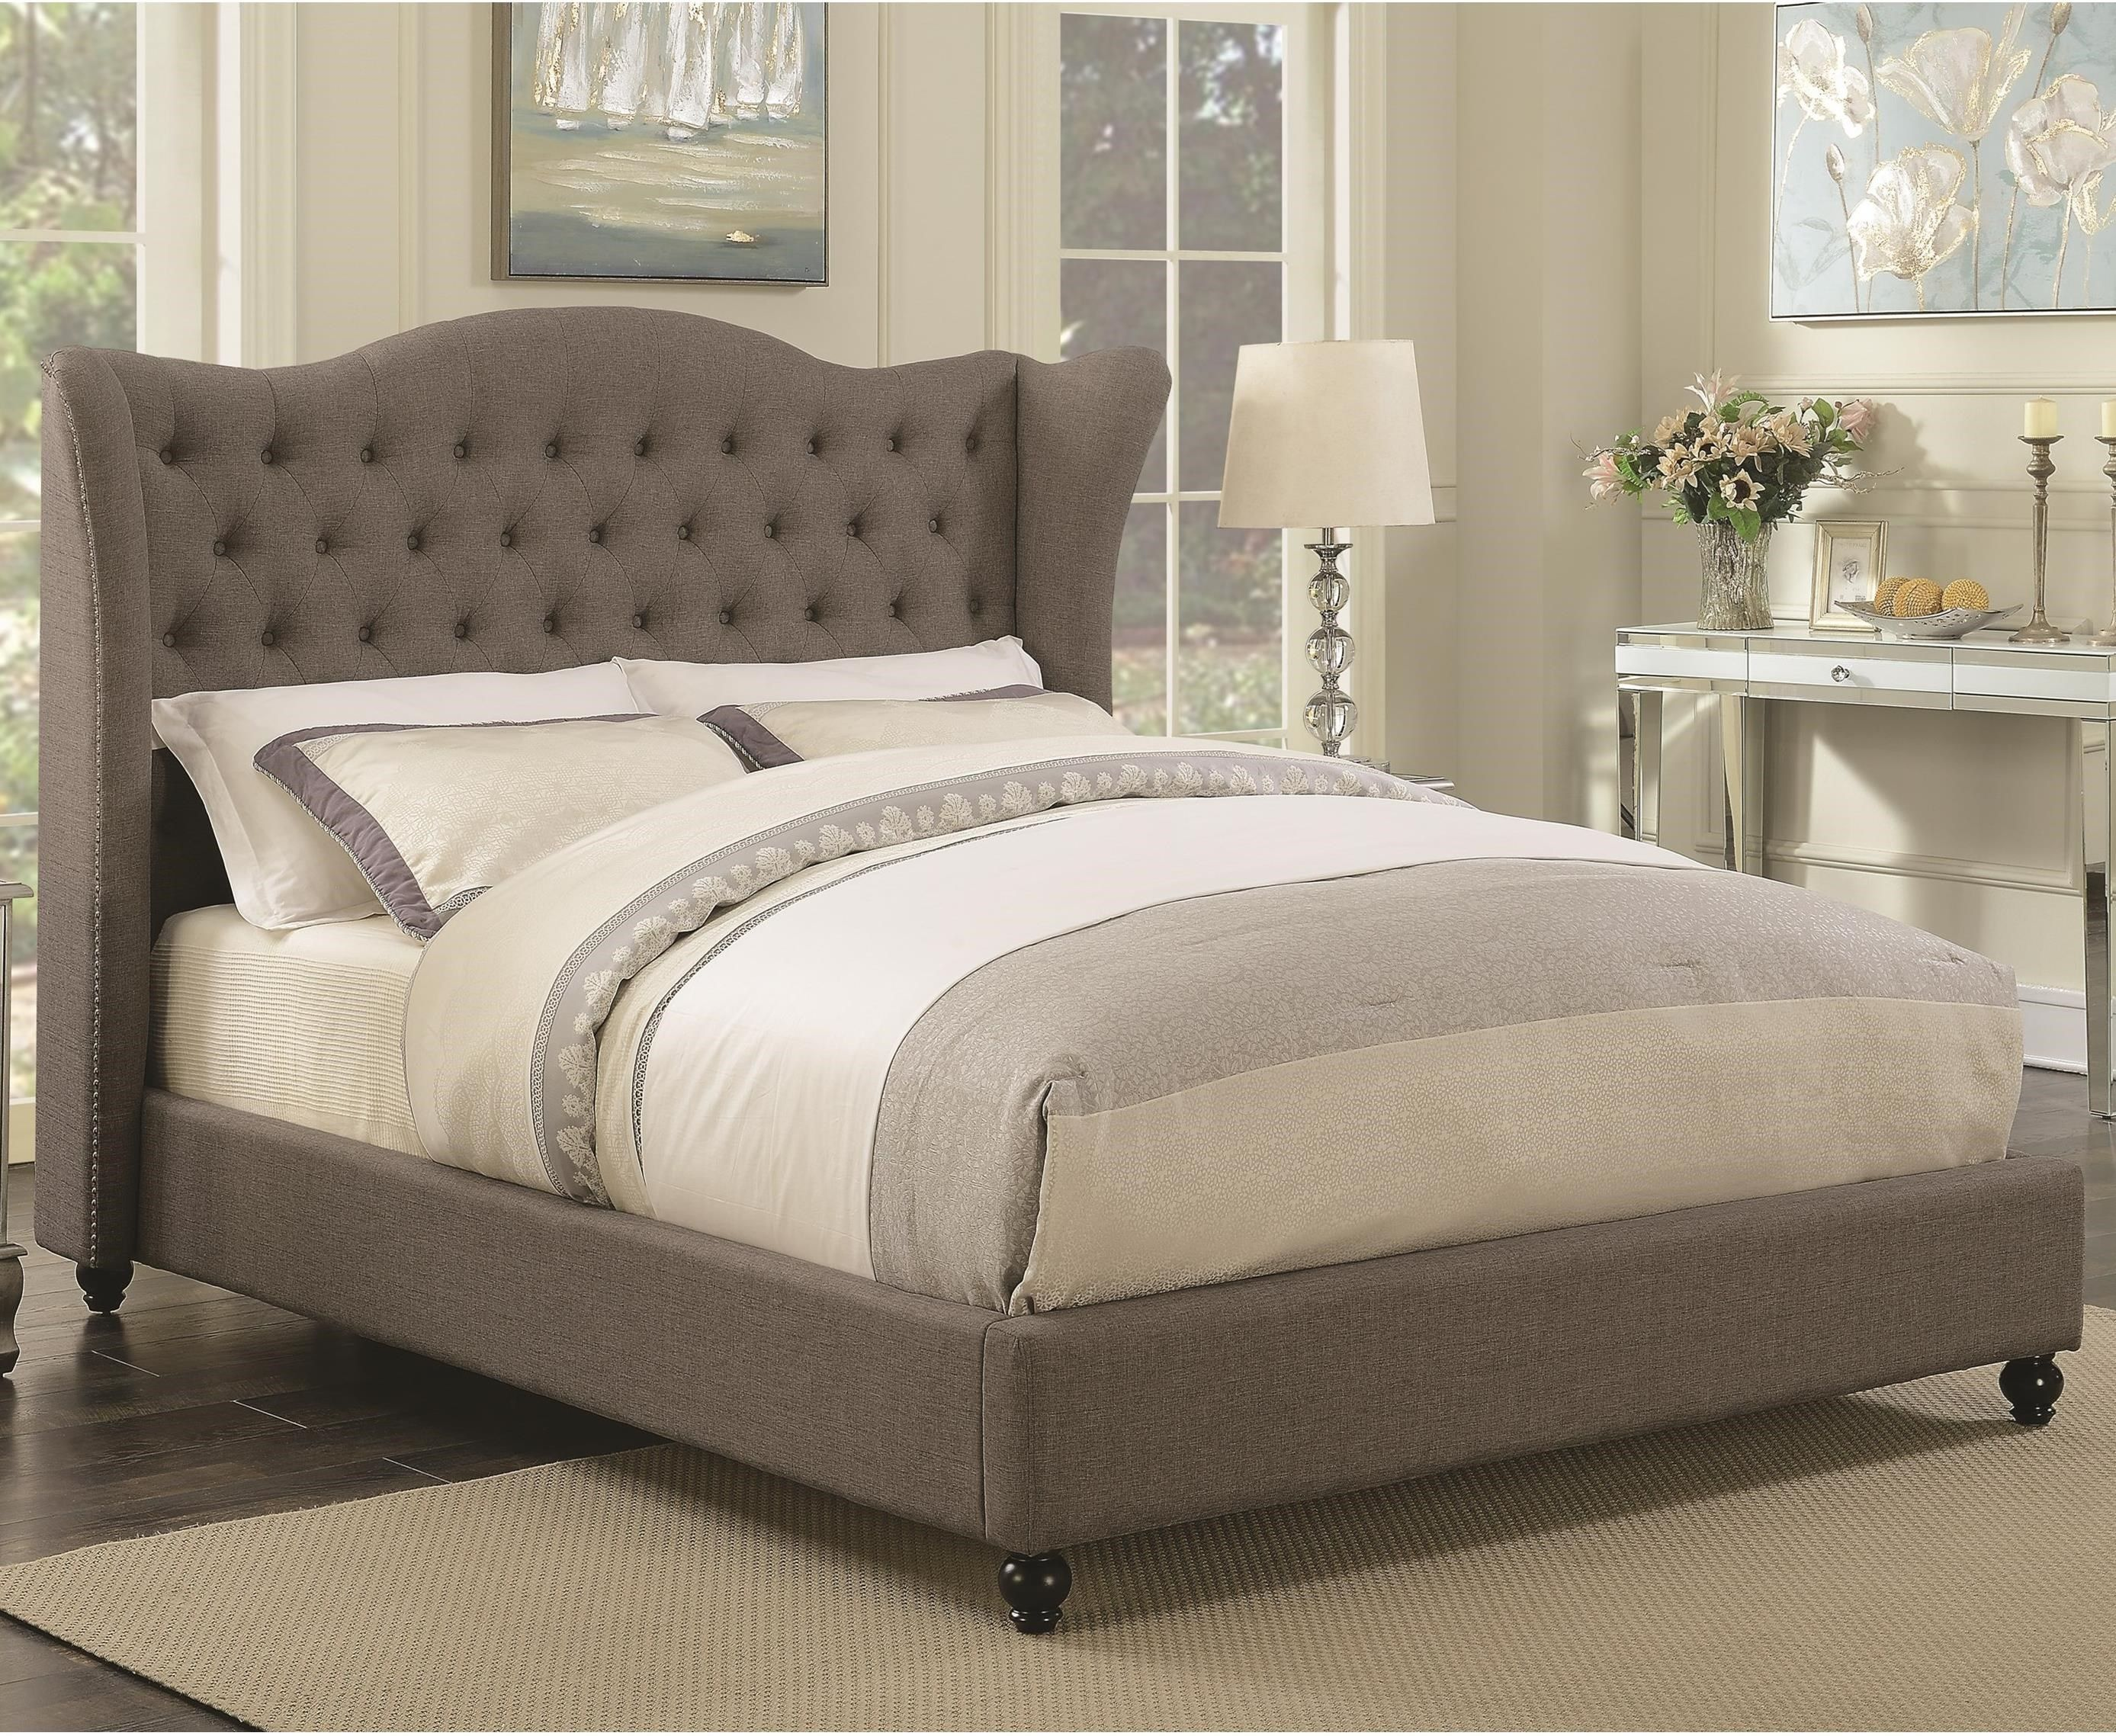 Coaster Newburgh King Upholstered Bed With Button Tufted Headboard